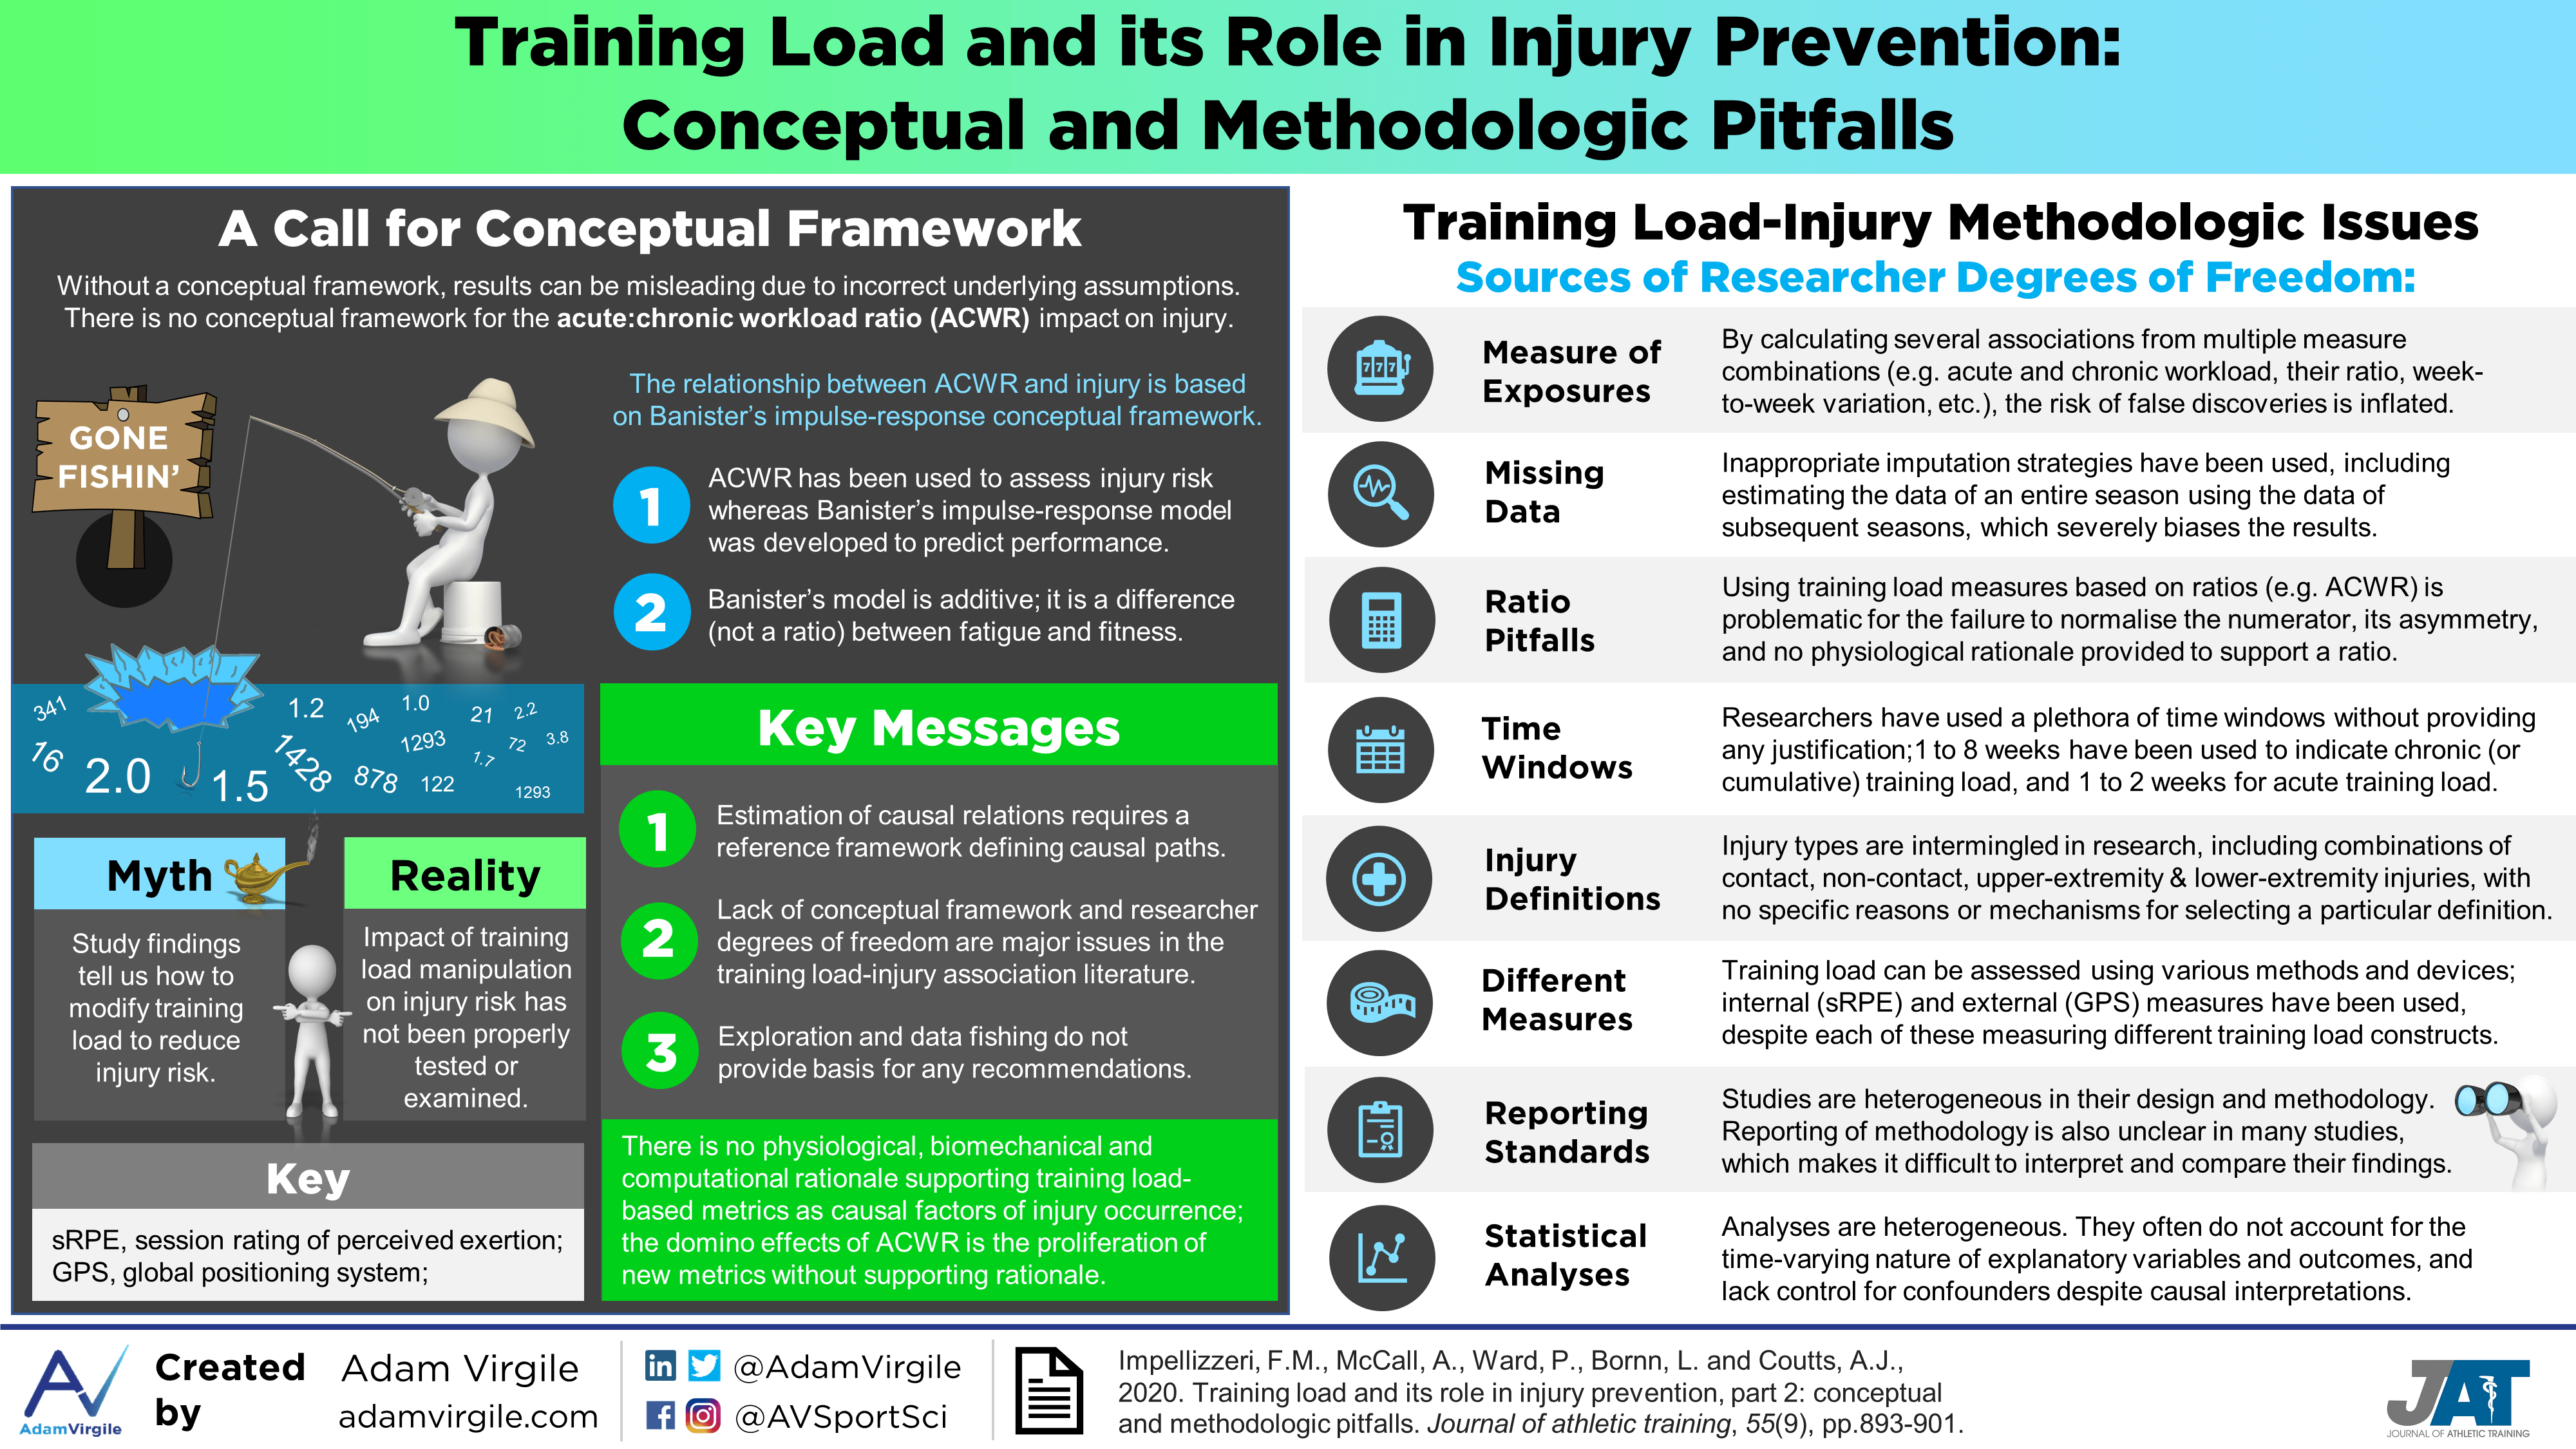 Training Load and its Role in Injury Prevention: Conceptual and Methodologic Pitfalls